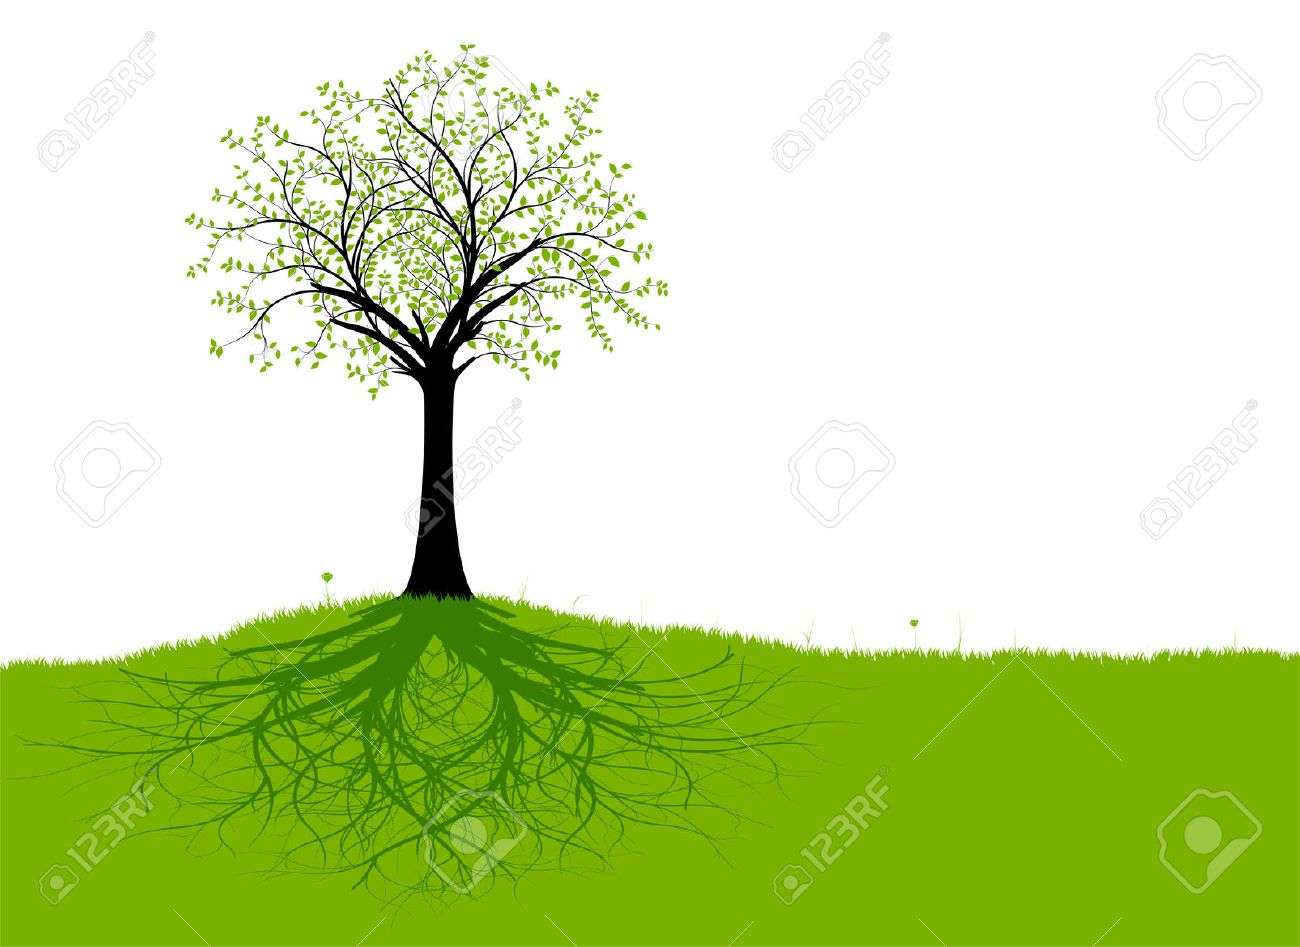 tree of life images u0026 stock pictures royalty free tree of life